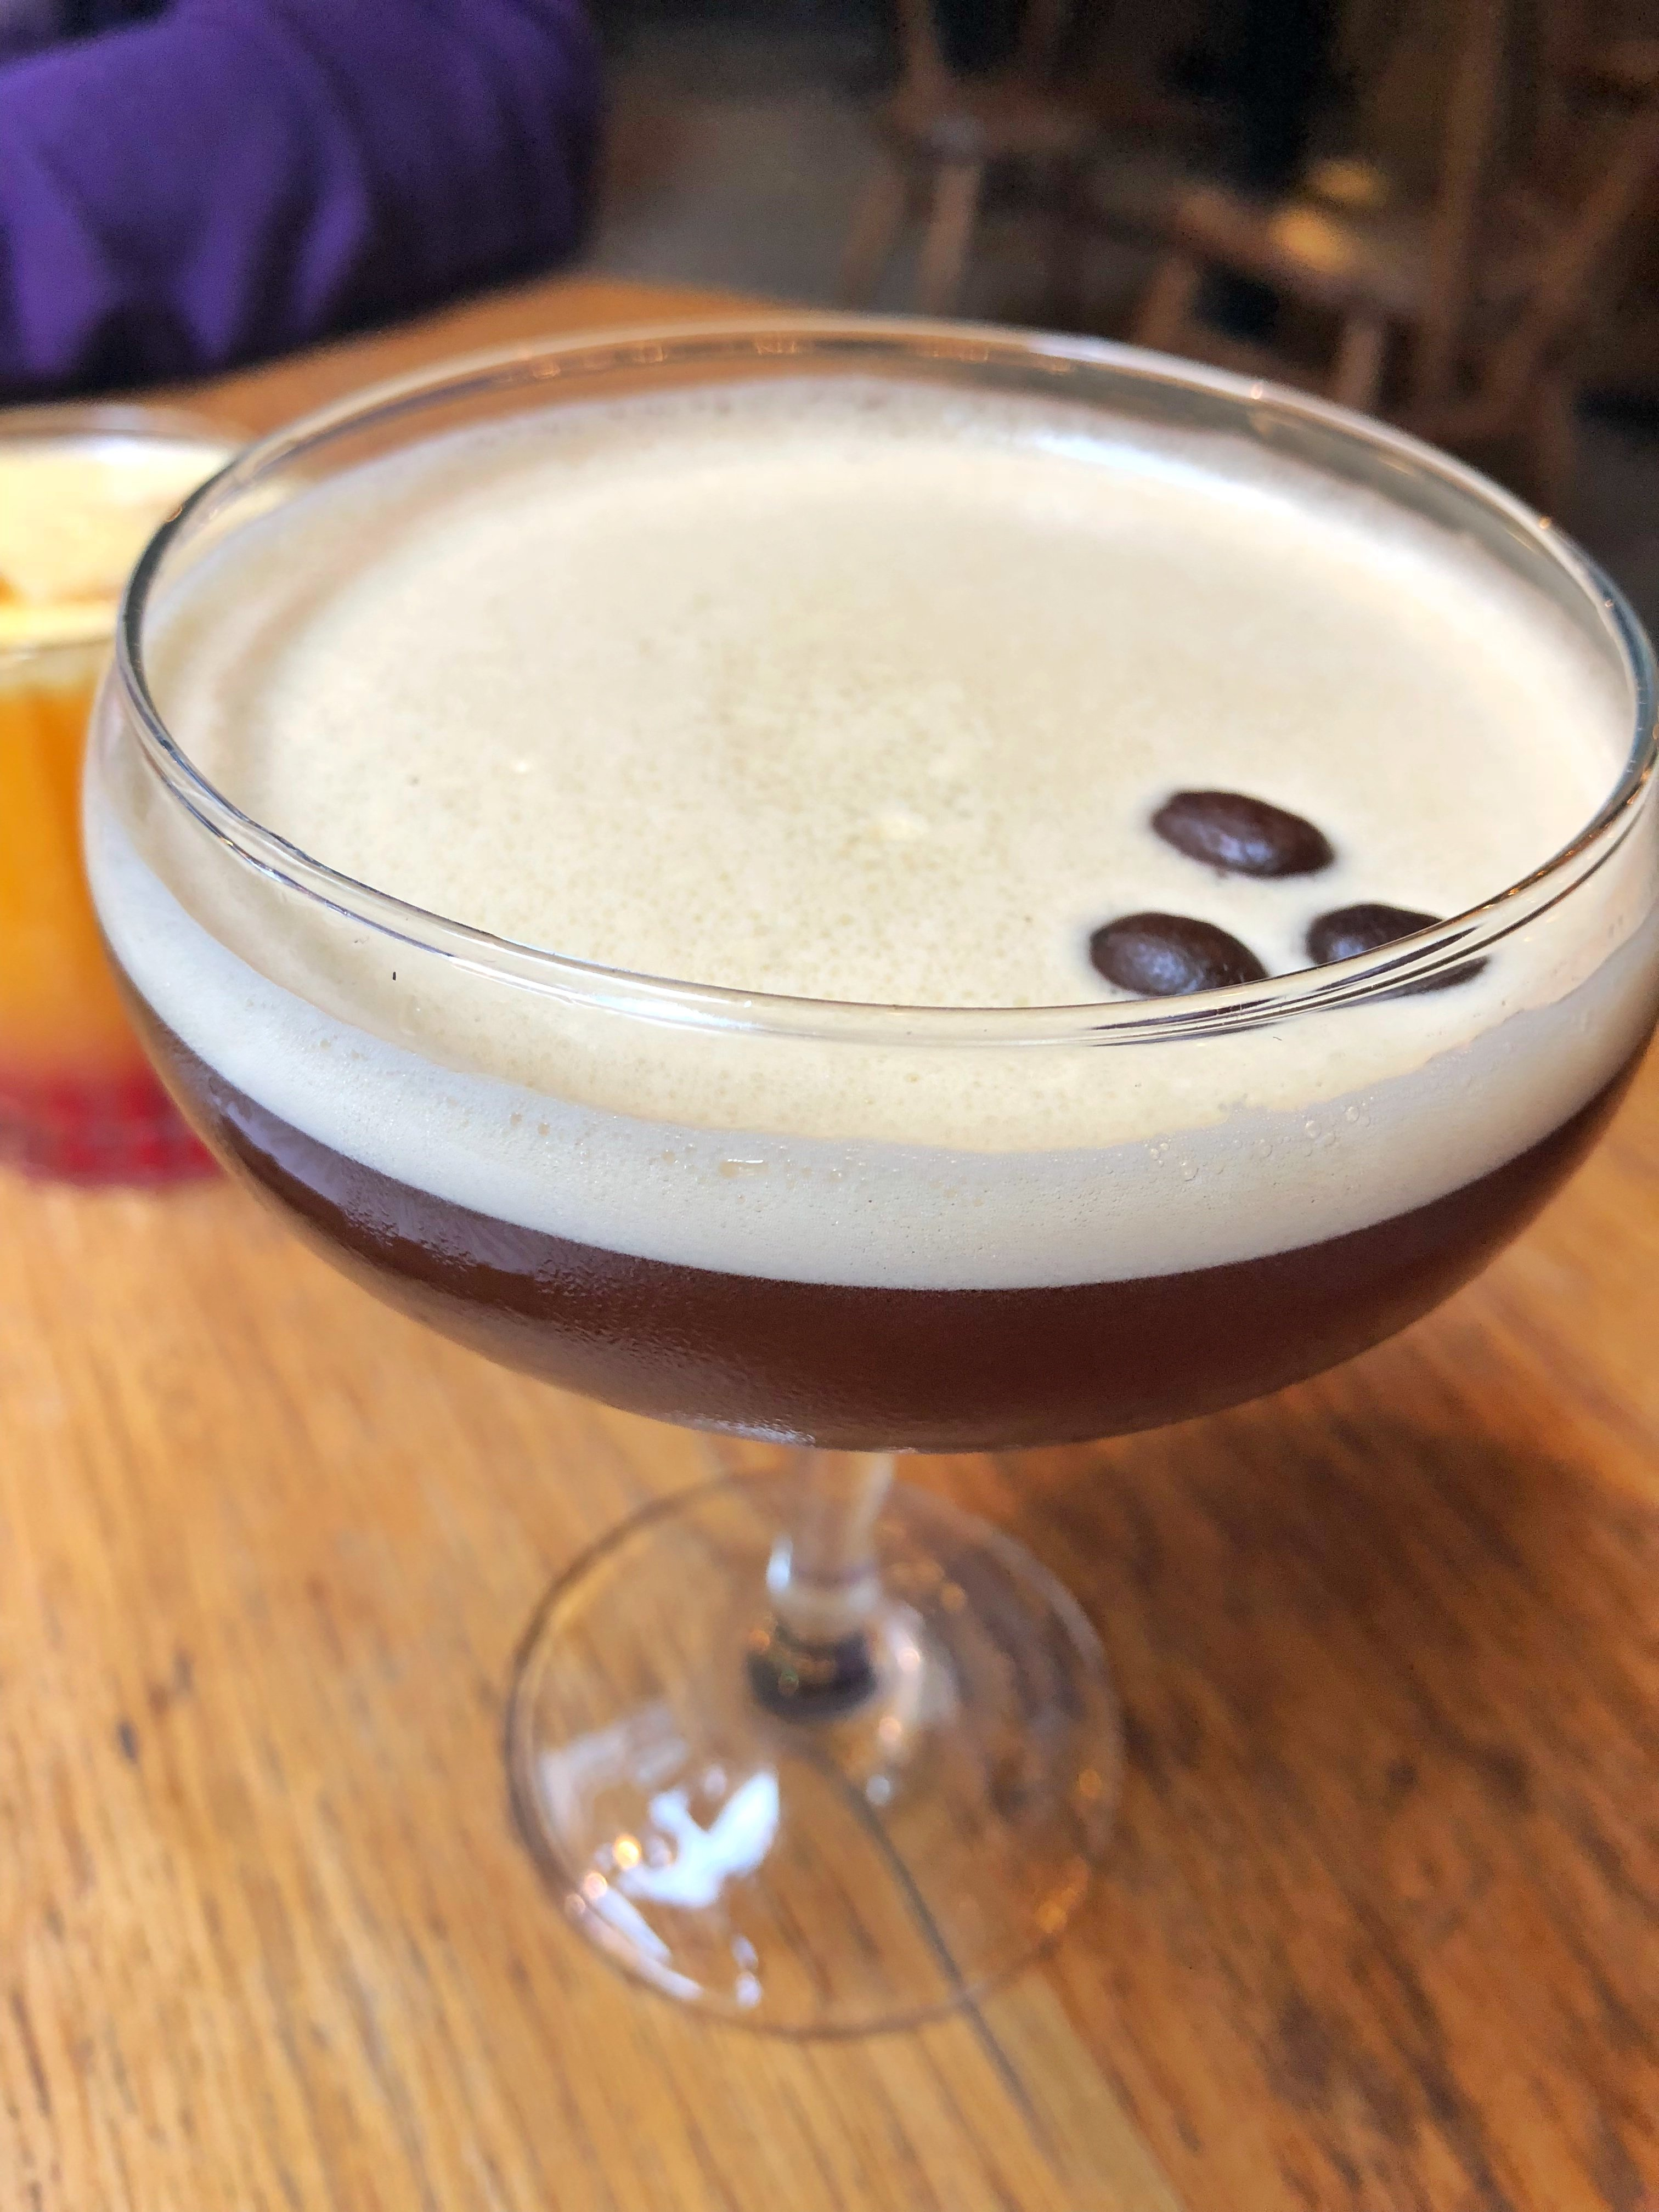 Oslo Hackney Salted Caramel Martini